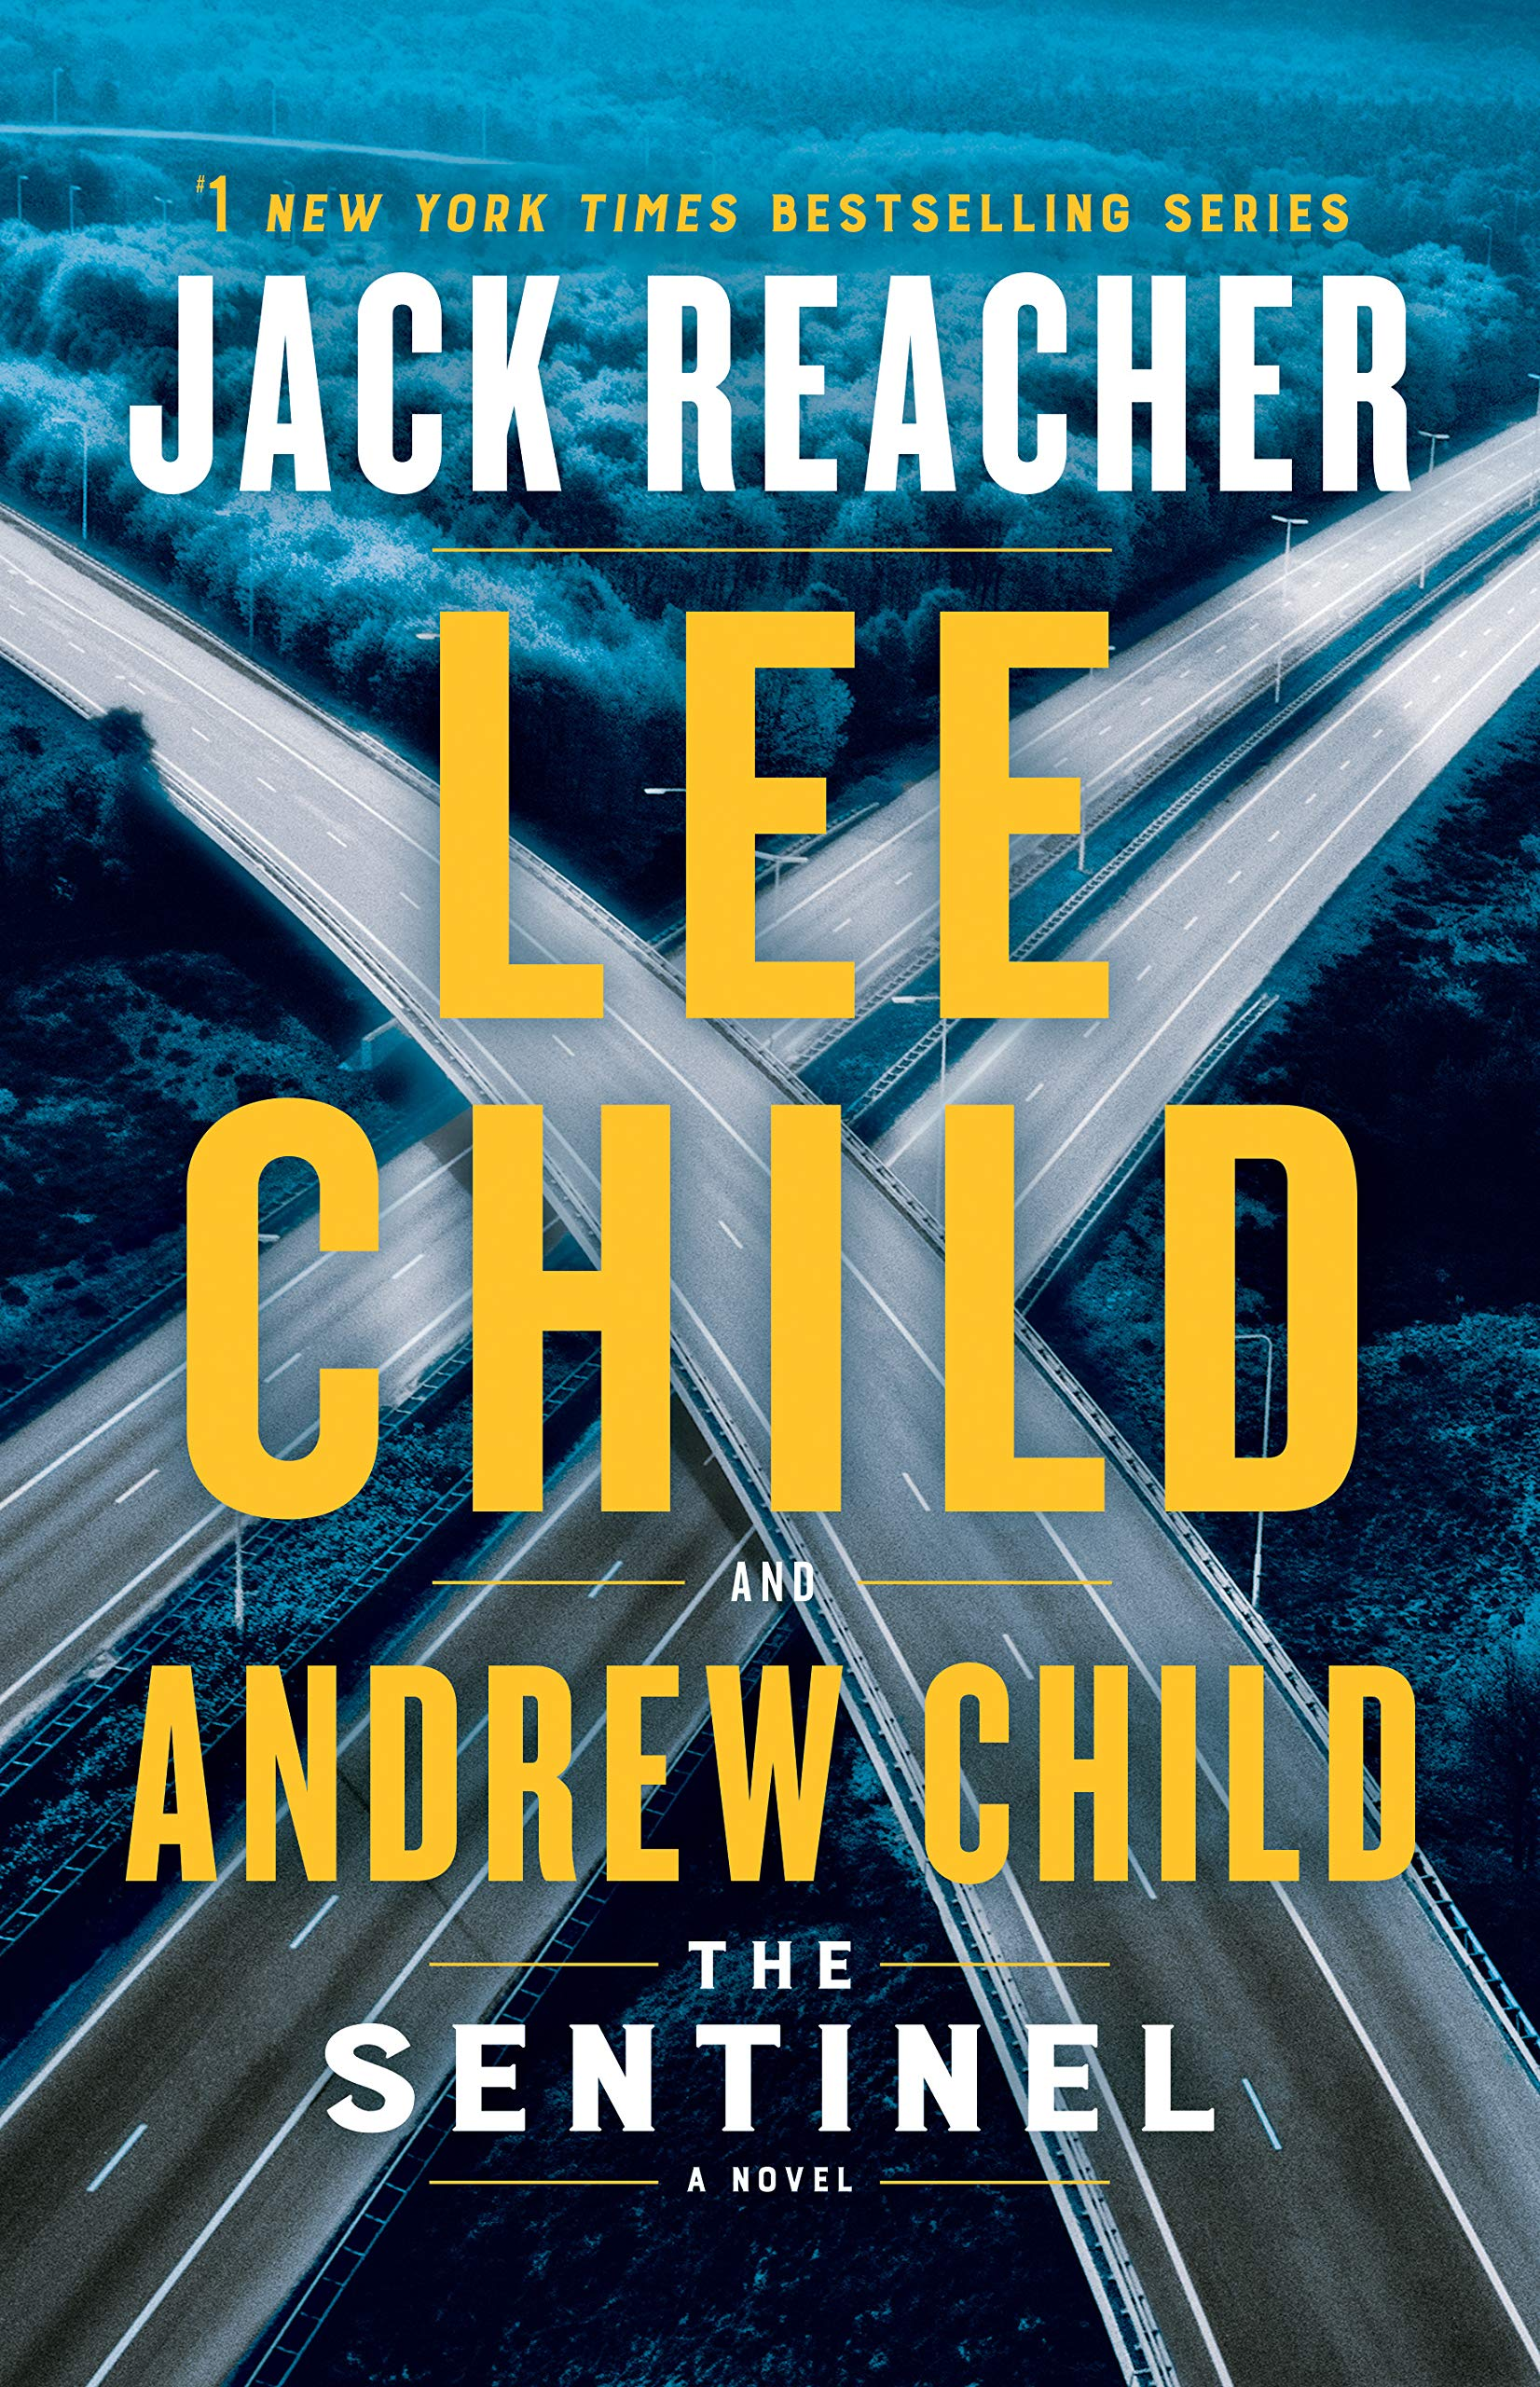 Book Review: The Sentinel by Lee Child and Andrew Child